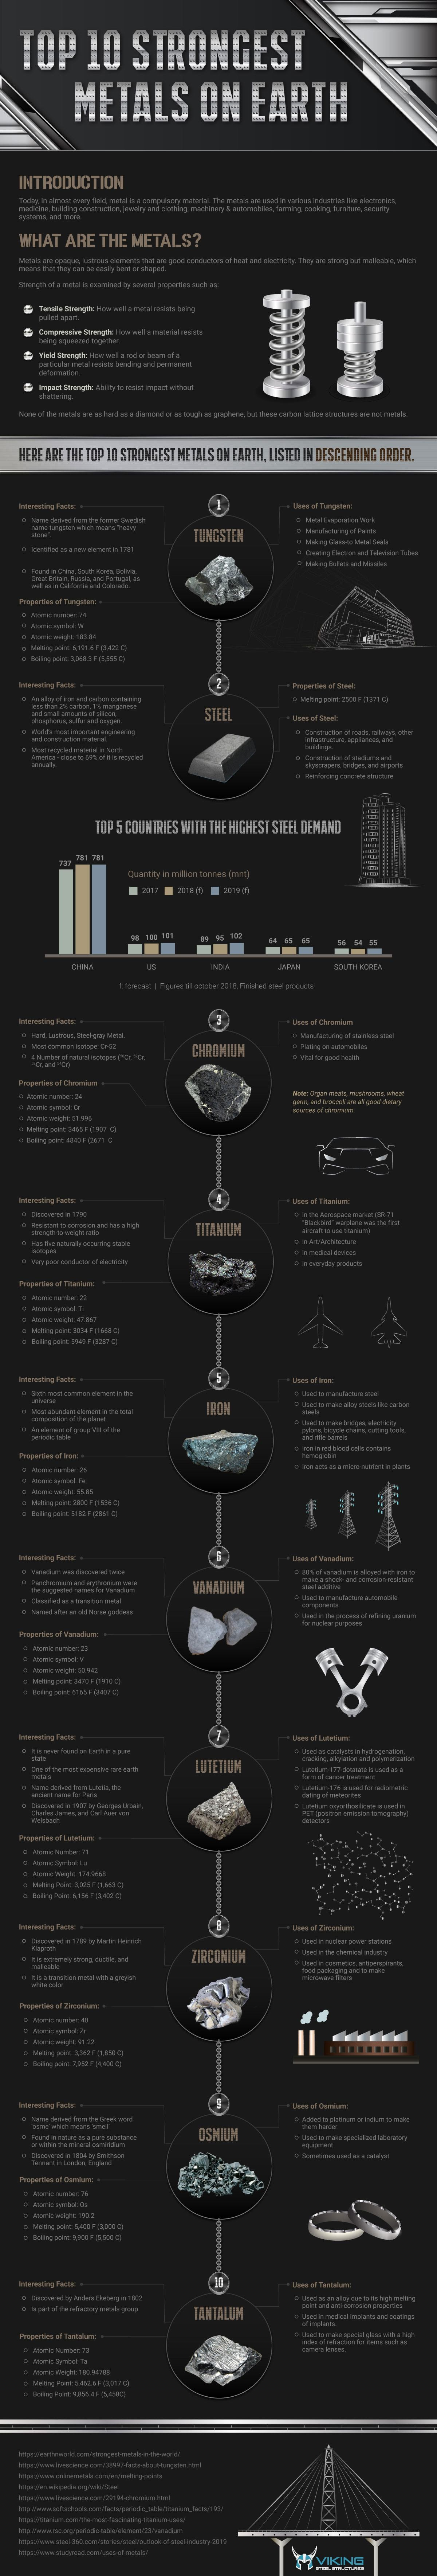 Top 10 Strongest Metals on Earth #infographic